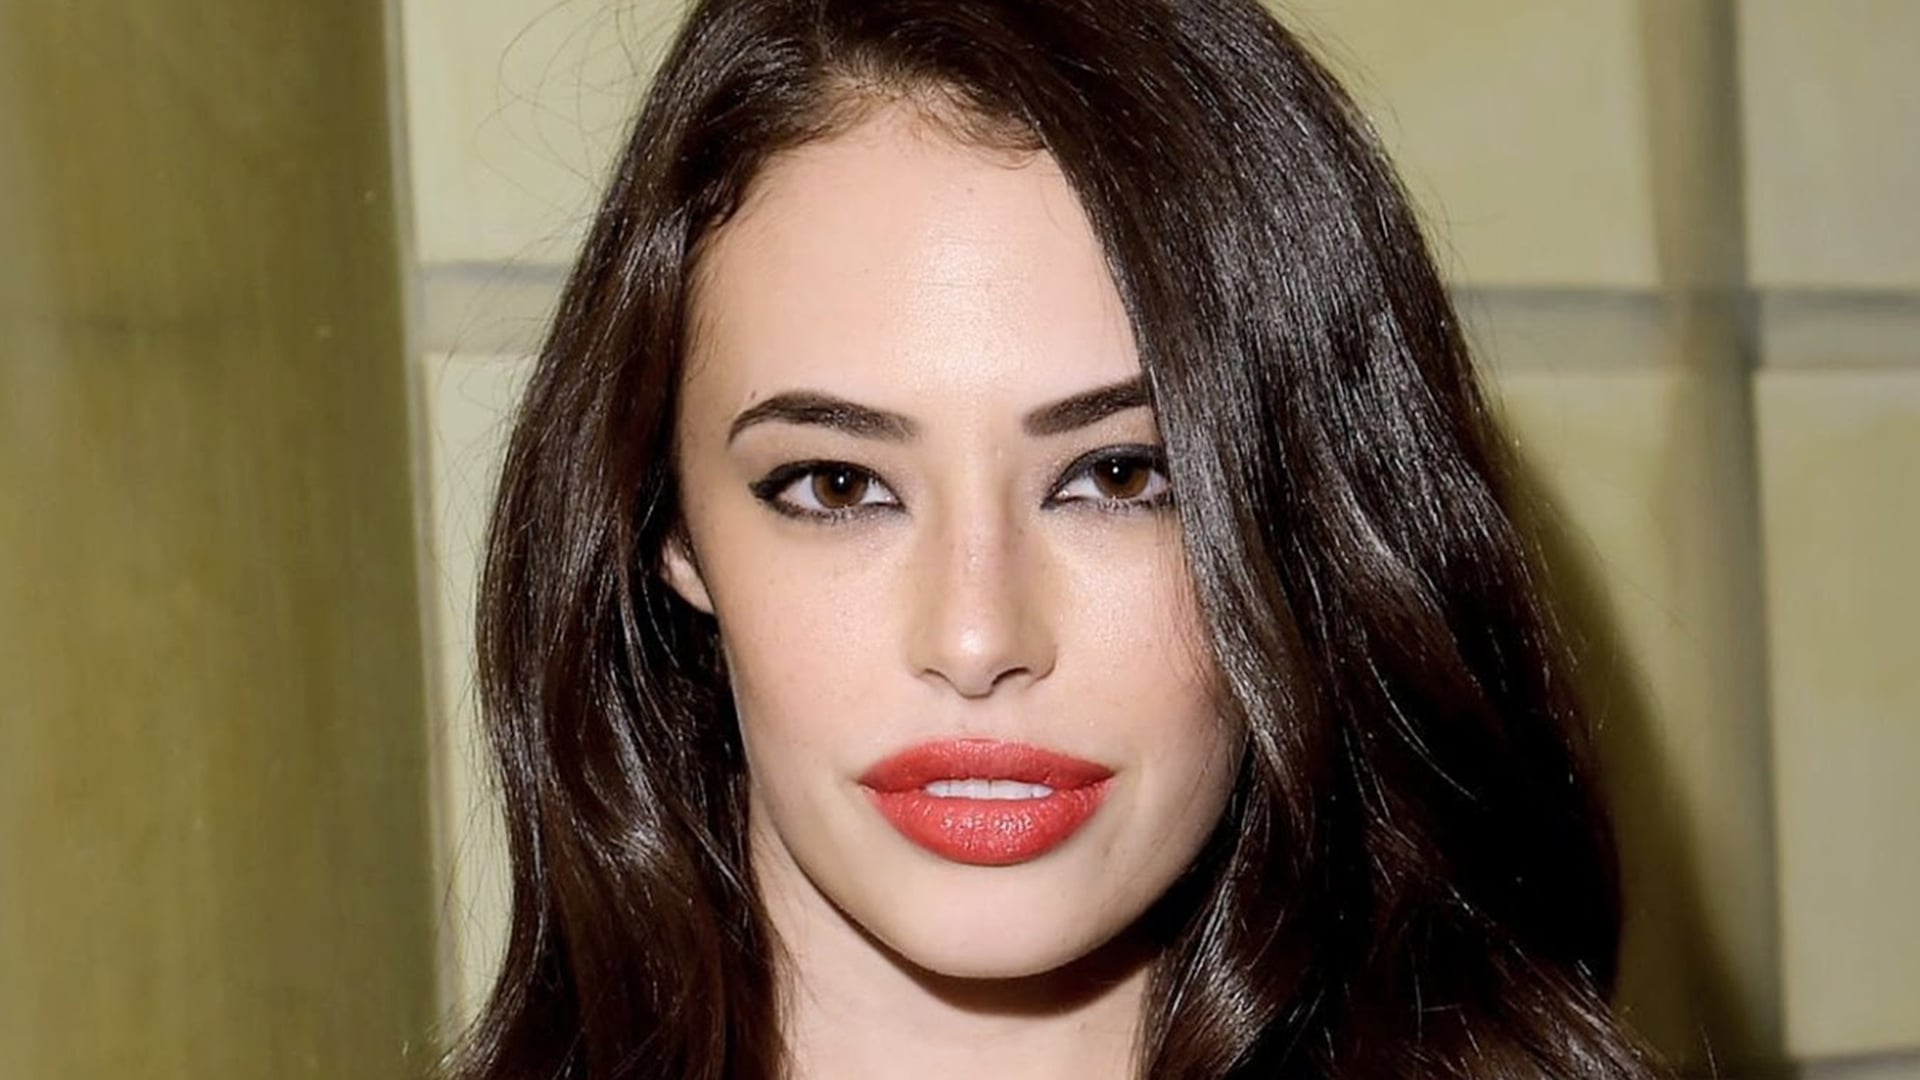 Hd wallpapers for android - Chloe Bridges Hd Wallpapers Free Download